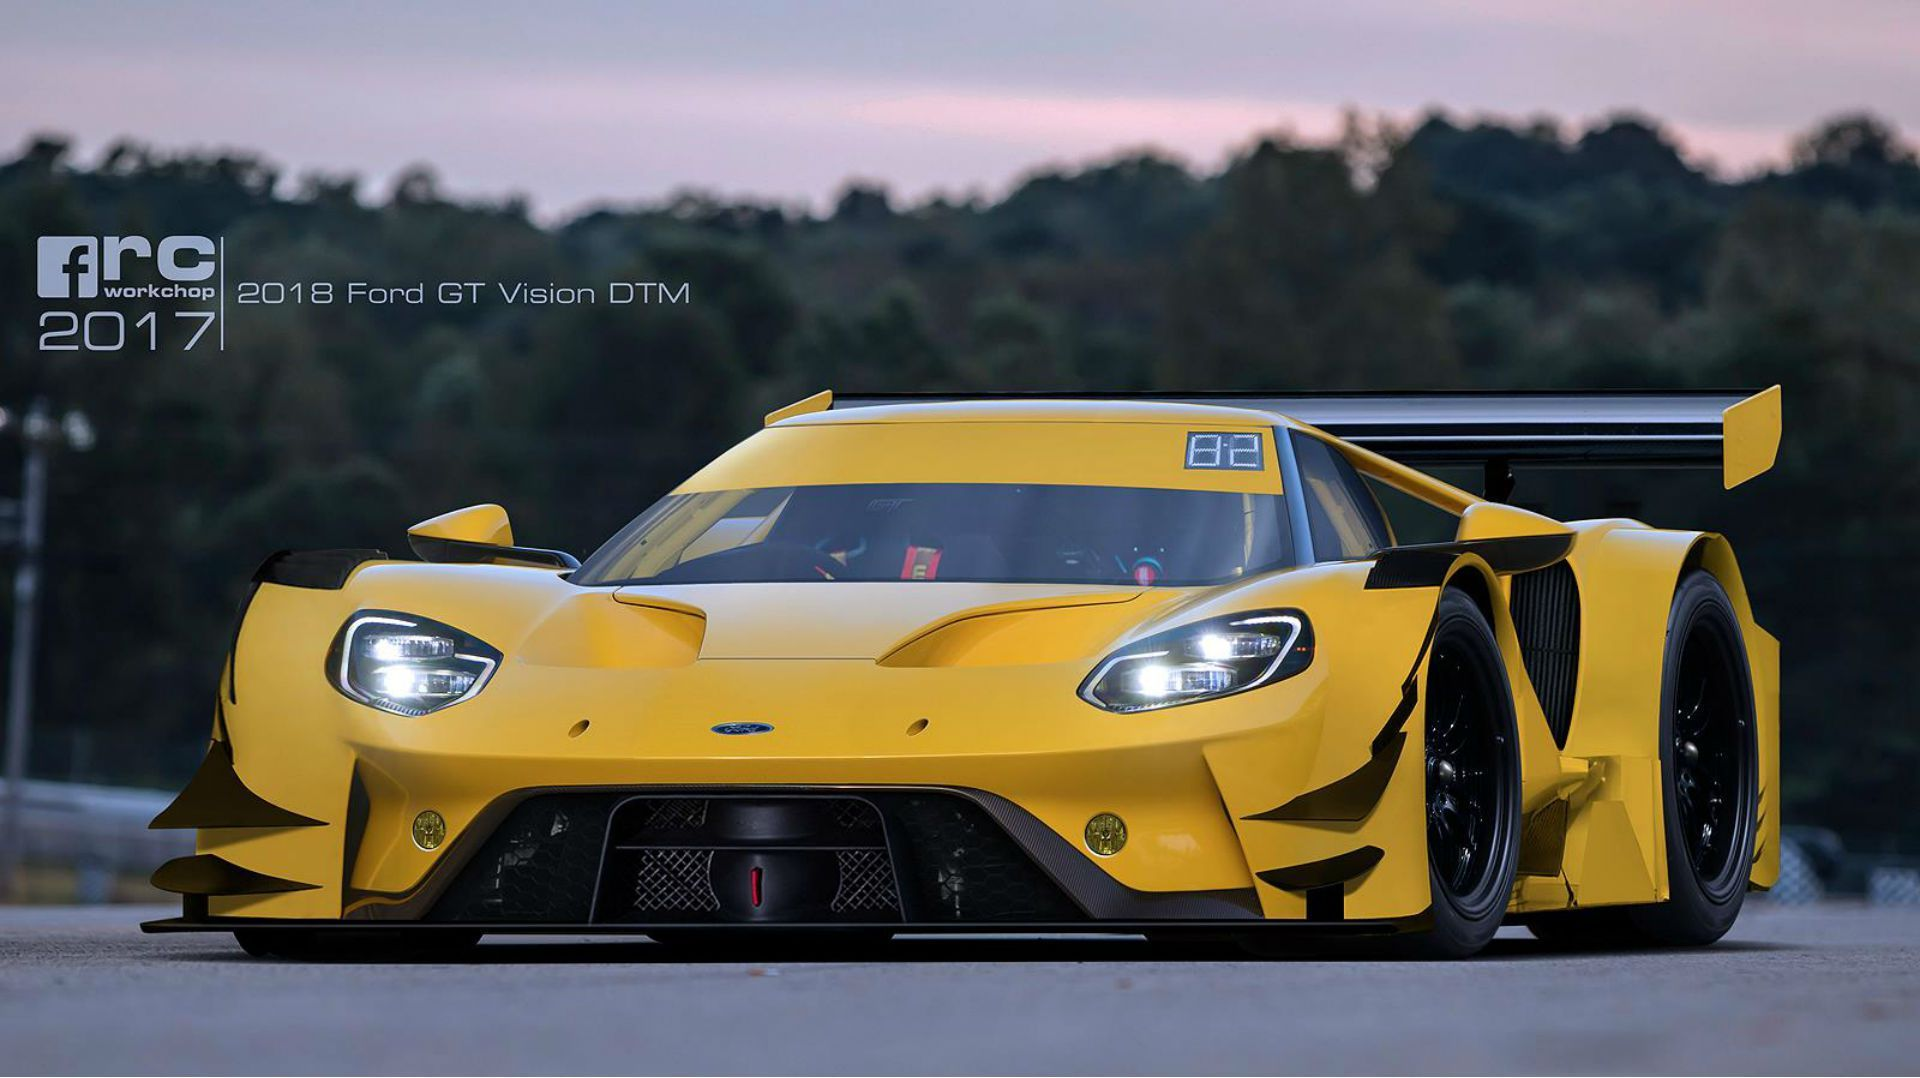 The  Ford Gt Looks Wicked When Reimagined As A Dtm Racer The Drive